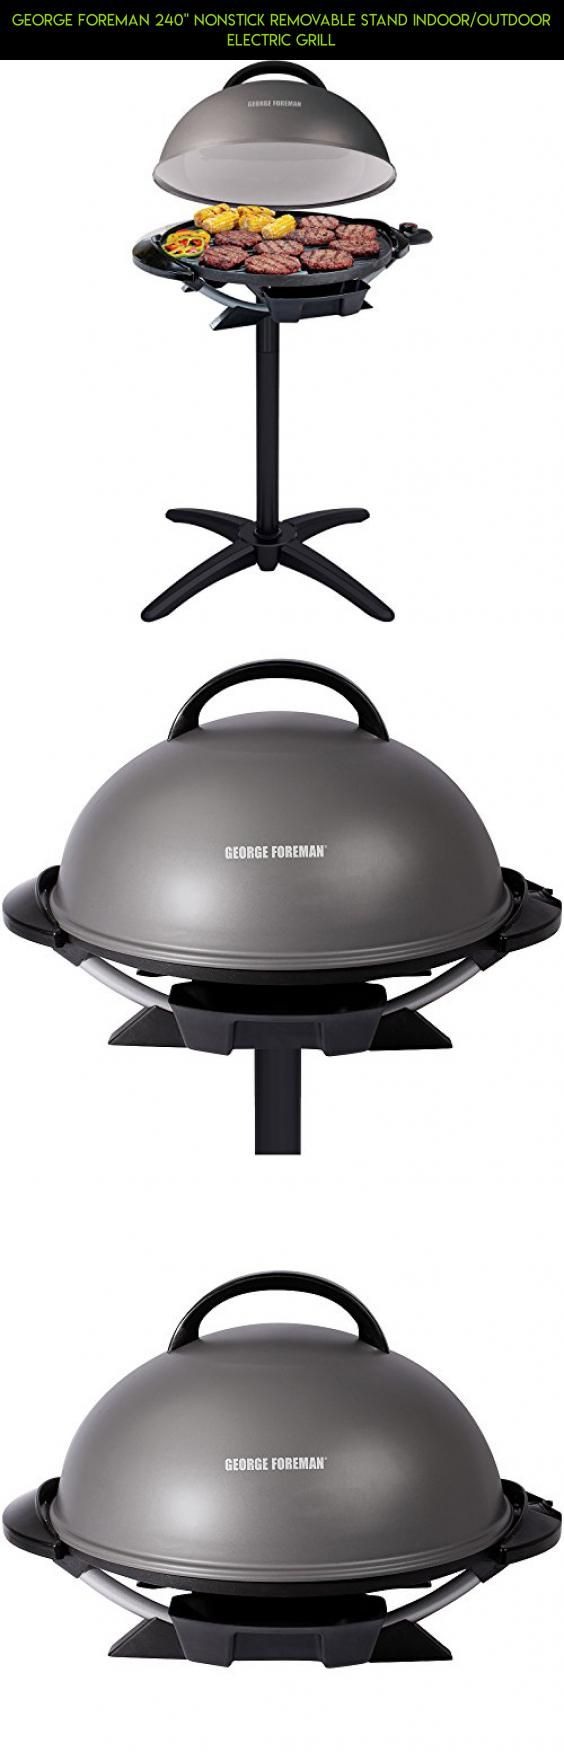 "George Foreman 240"" Nonstick Removable Stand Indoor/Outdoor Electric Grill #grill #pellet #grills #drone #cover #camera #plans #shopping #kit #z #products #gadgets #parts #technology #racing #tech #fpv"